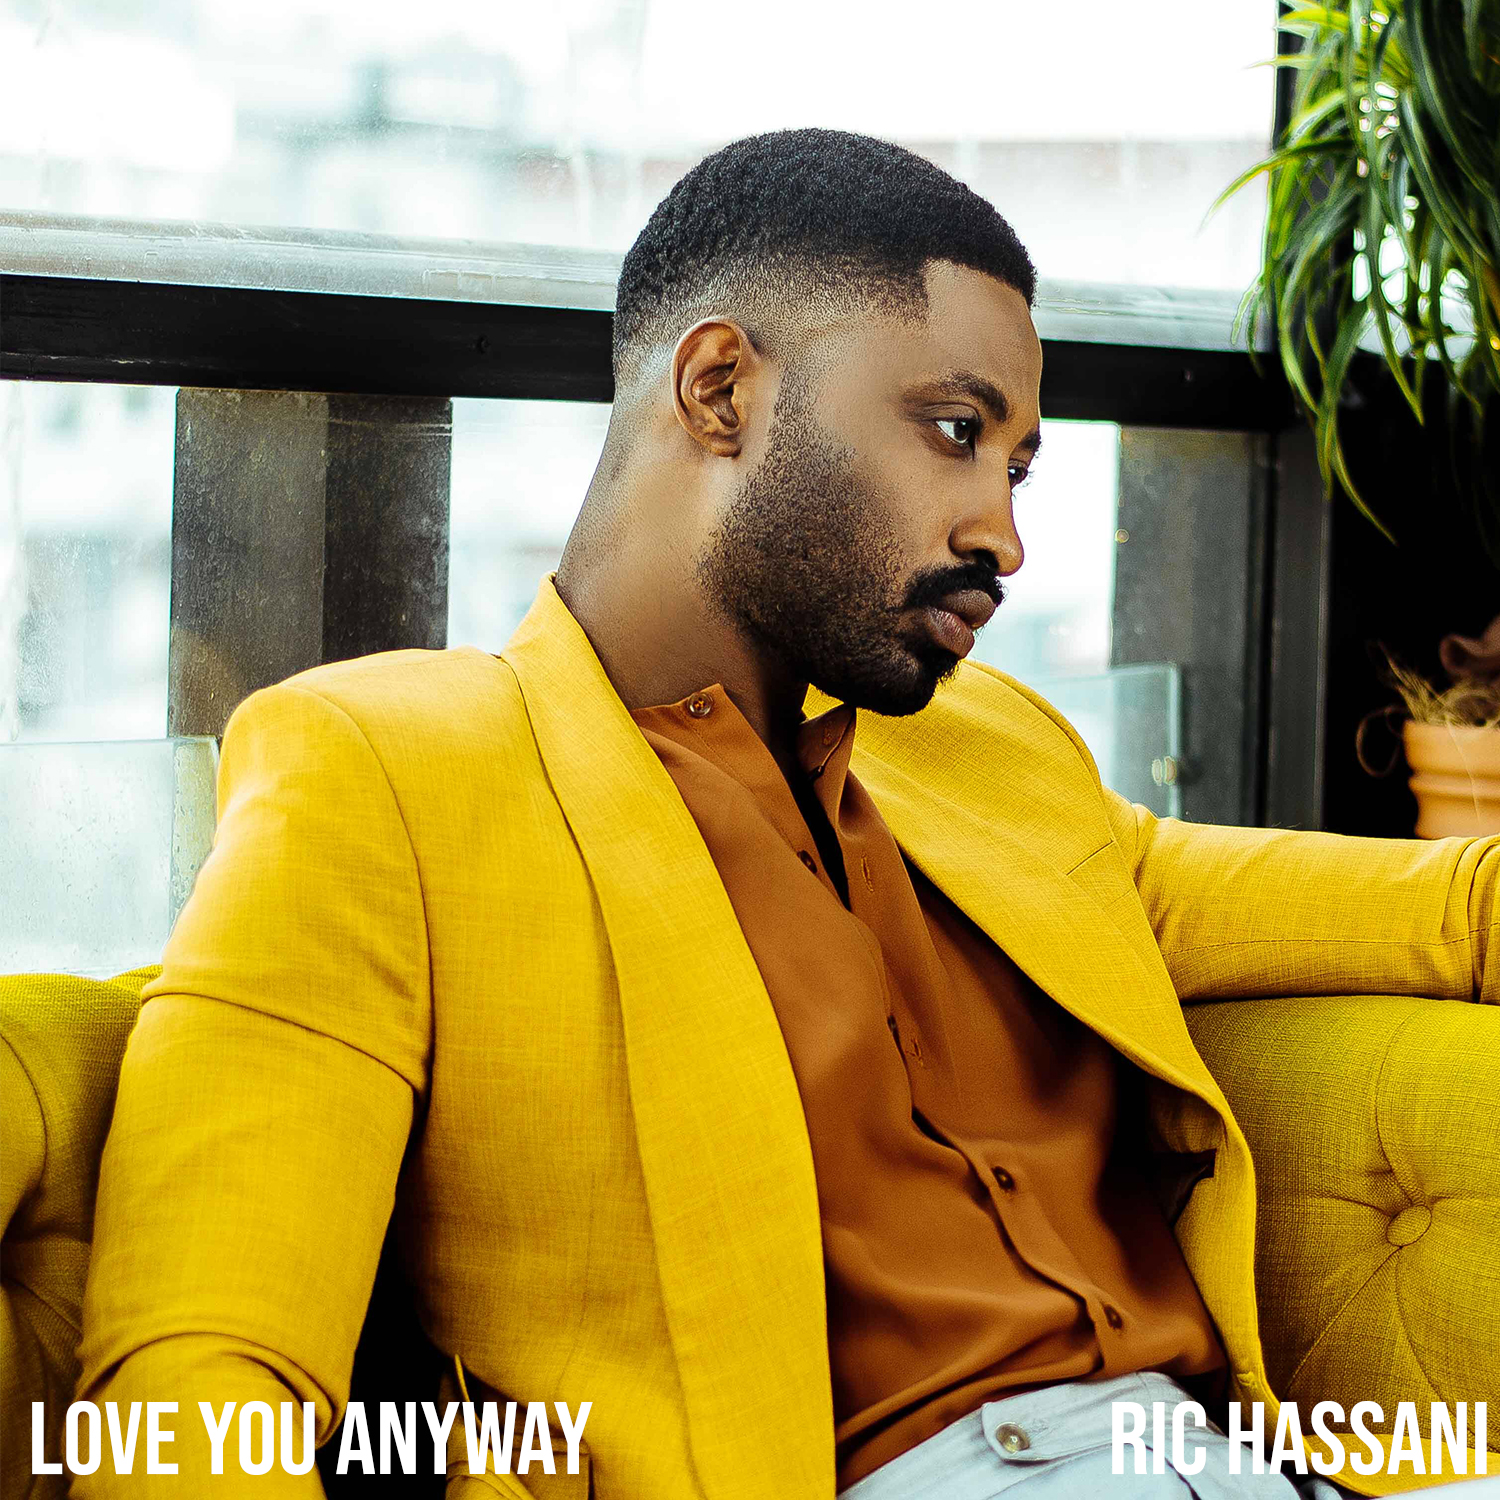 New Music: Ric Hassani – Love You Anyway